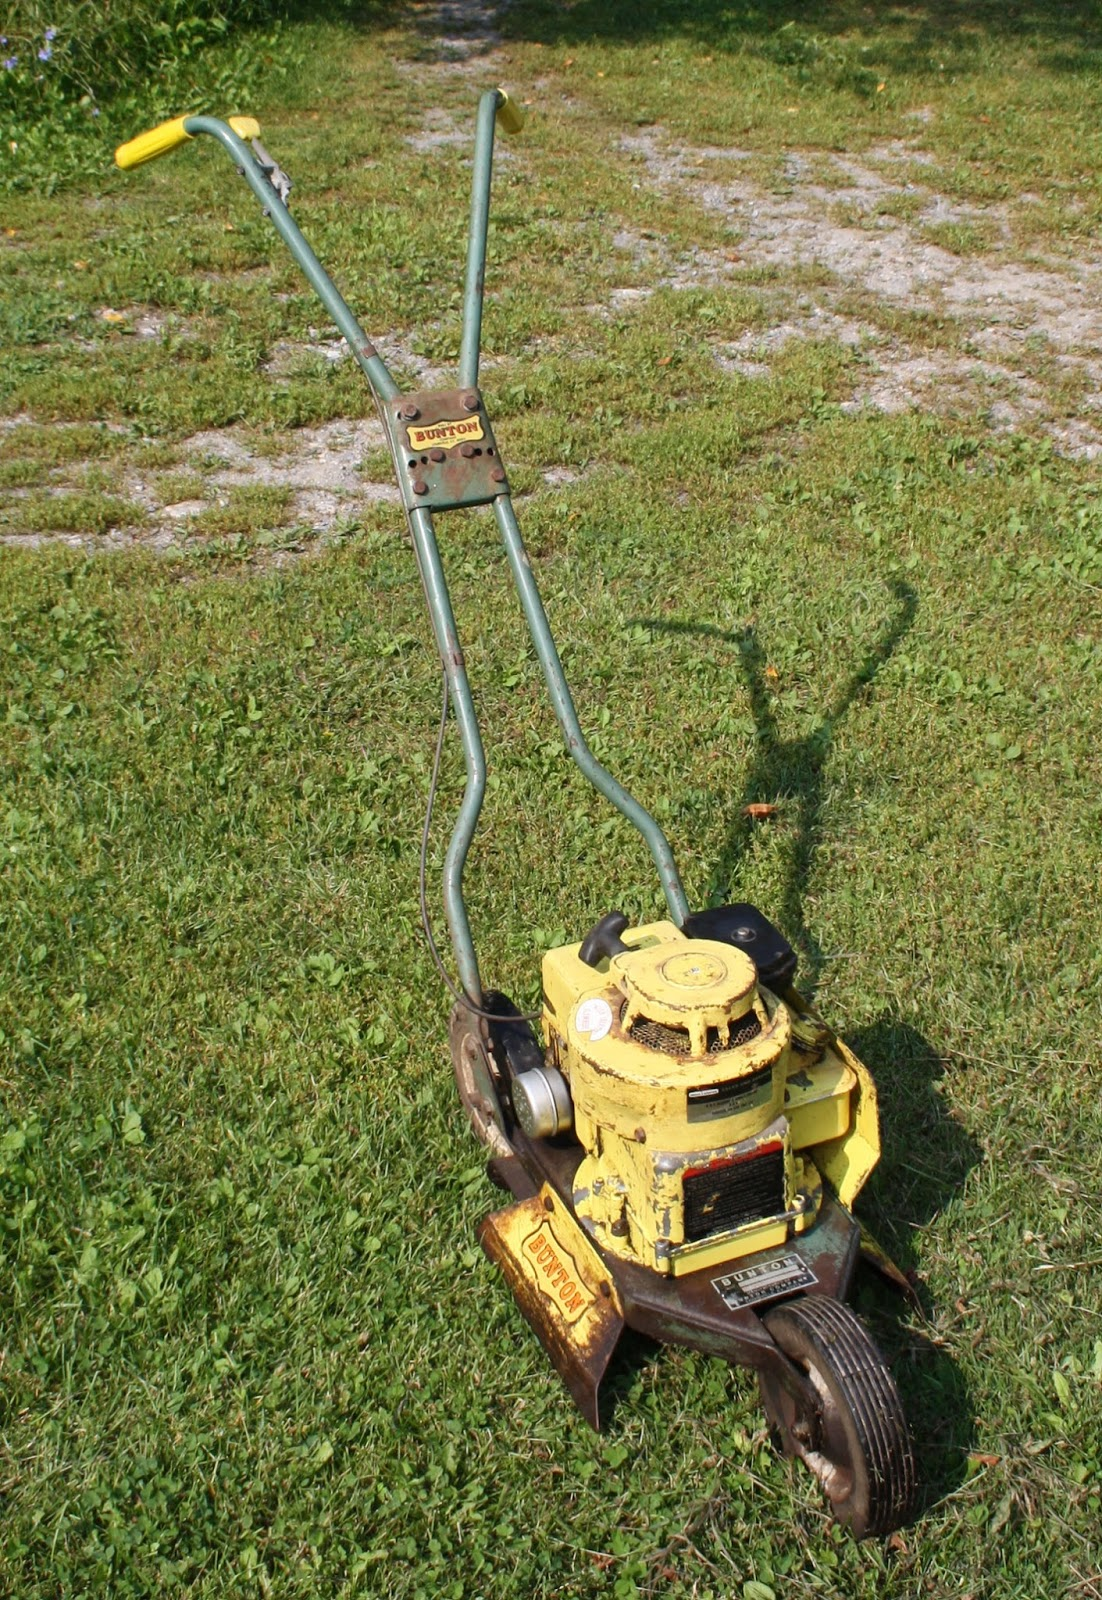 progress is fine but it s gone on for too long bunton lawn trimmer rh progress is fine blogspot com Bunton Service Manual Bunton Mower Manuals for Model Bzt-31L CG